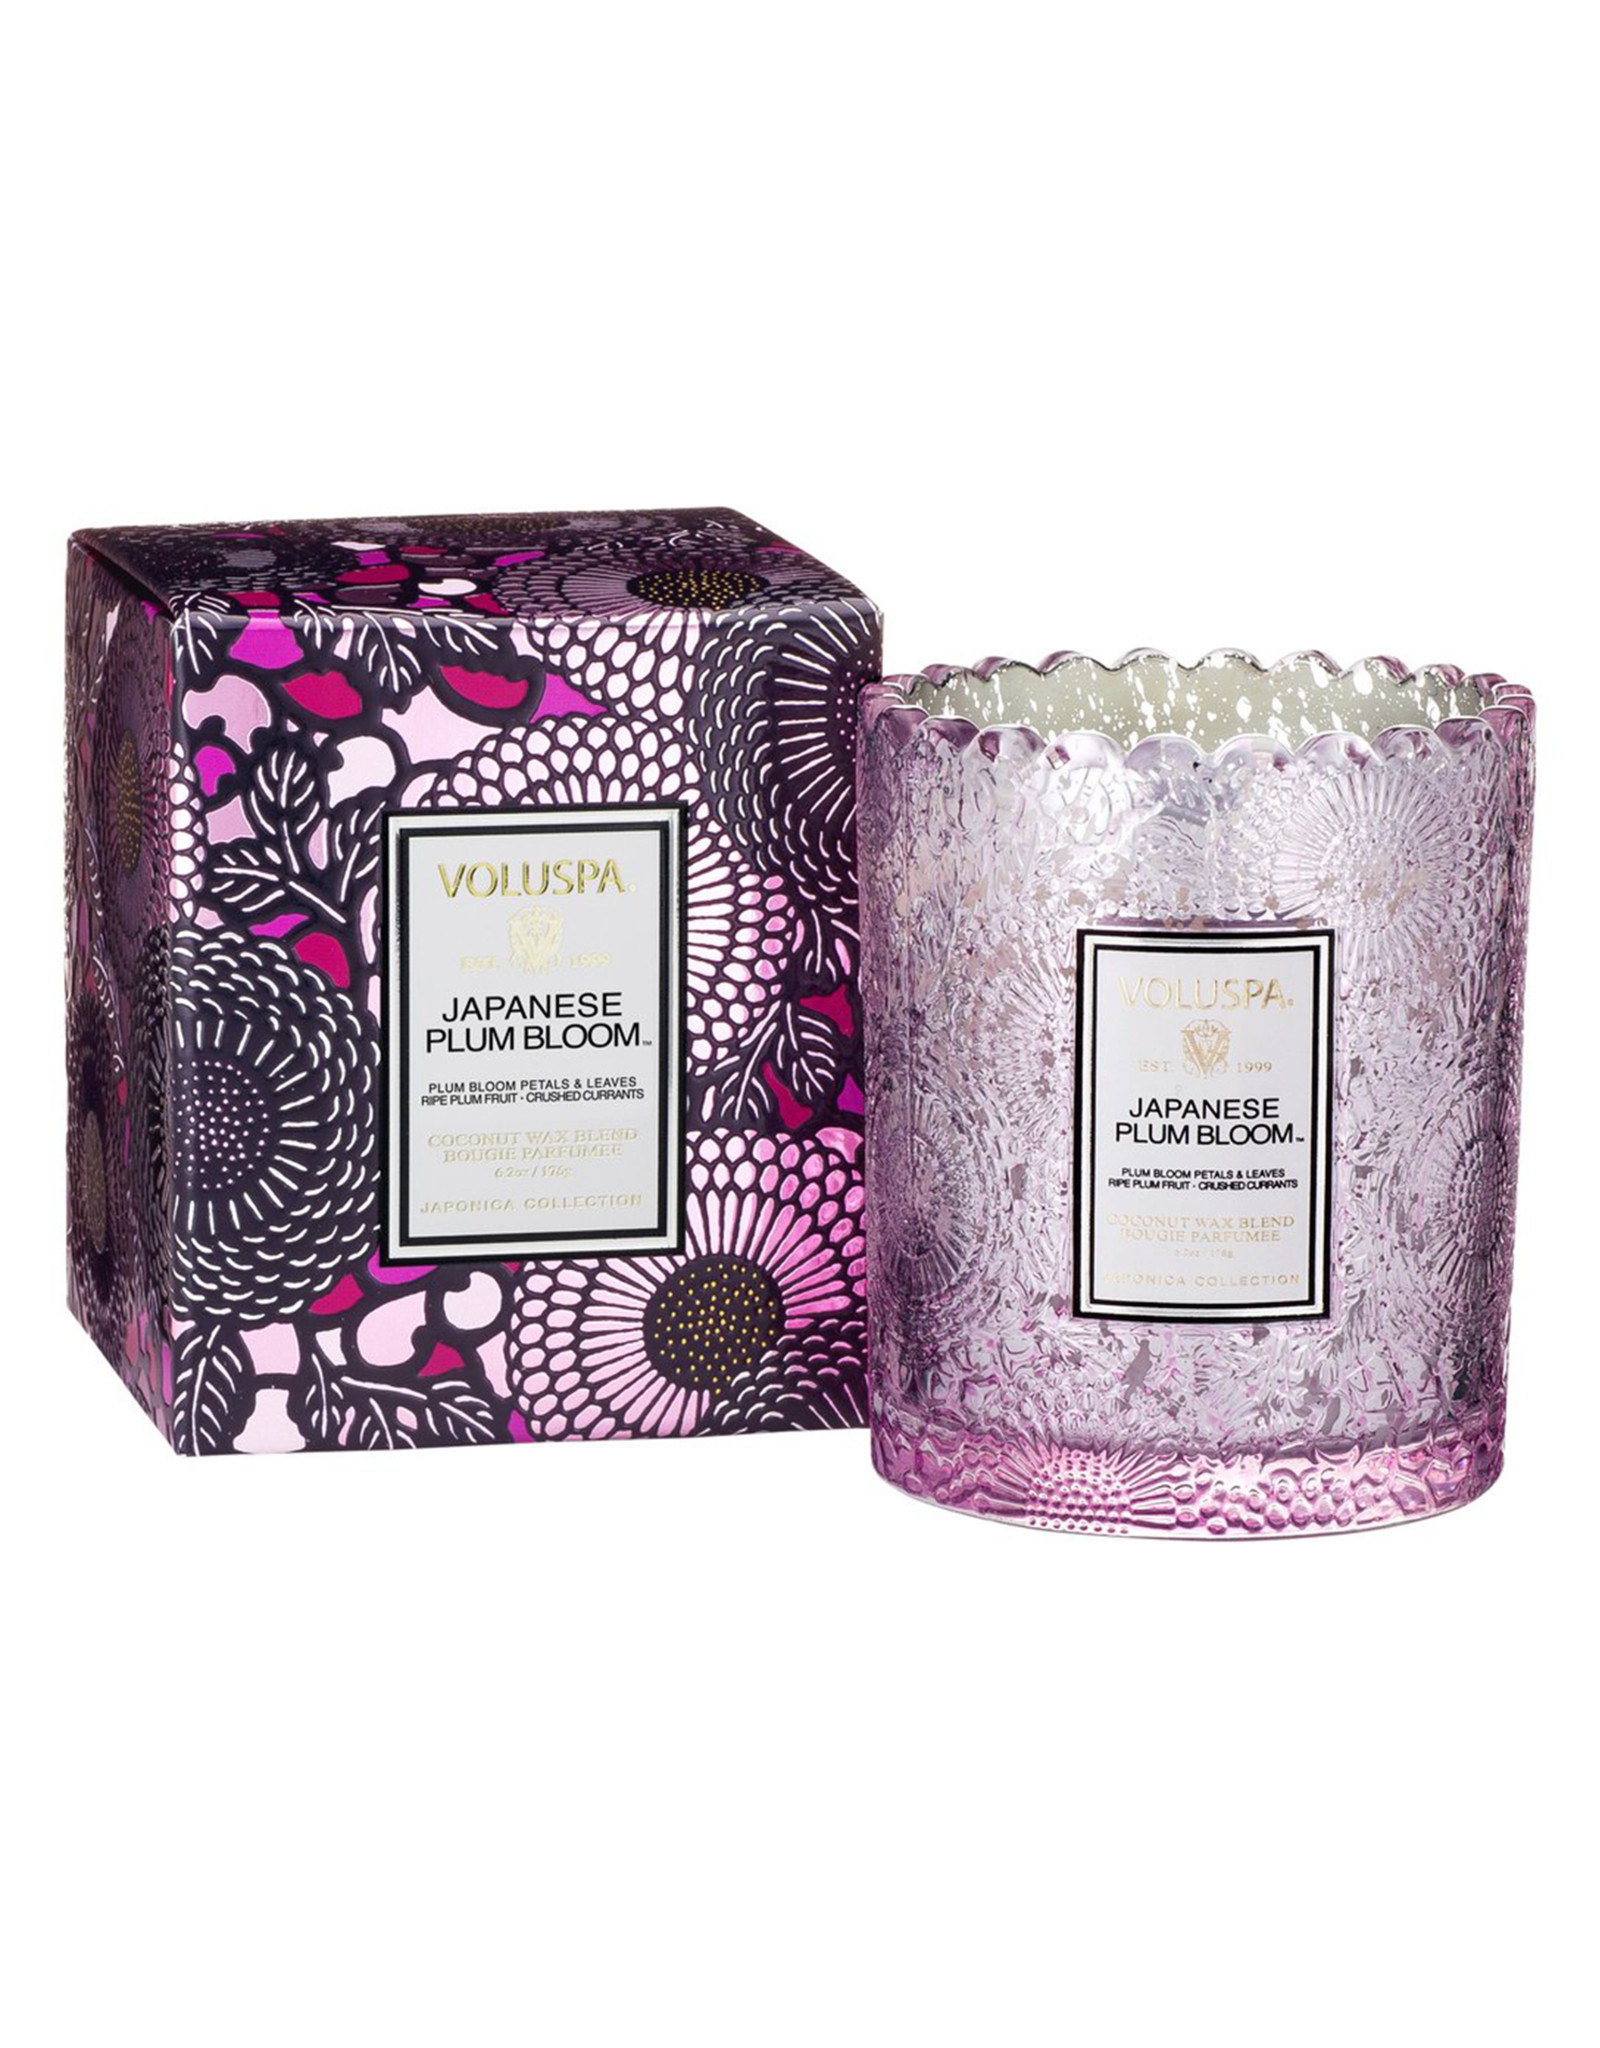 VOLUSPA JAPANESE PLUM BLOOM SCALLOPED EDGE CANDLE